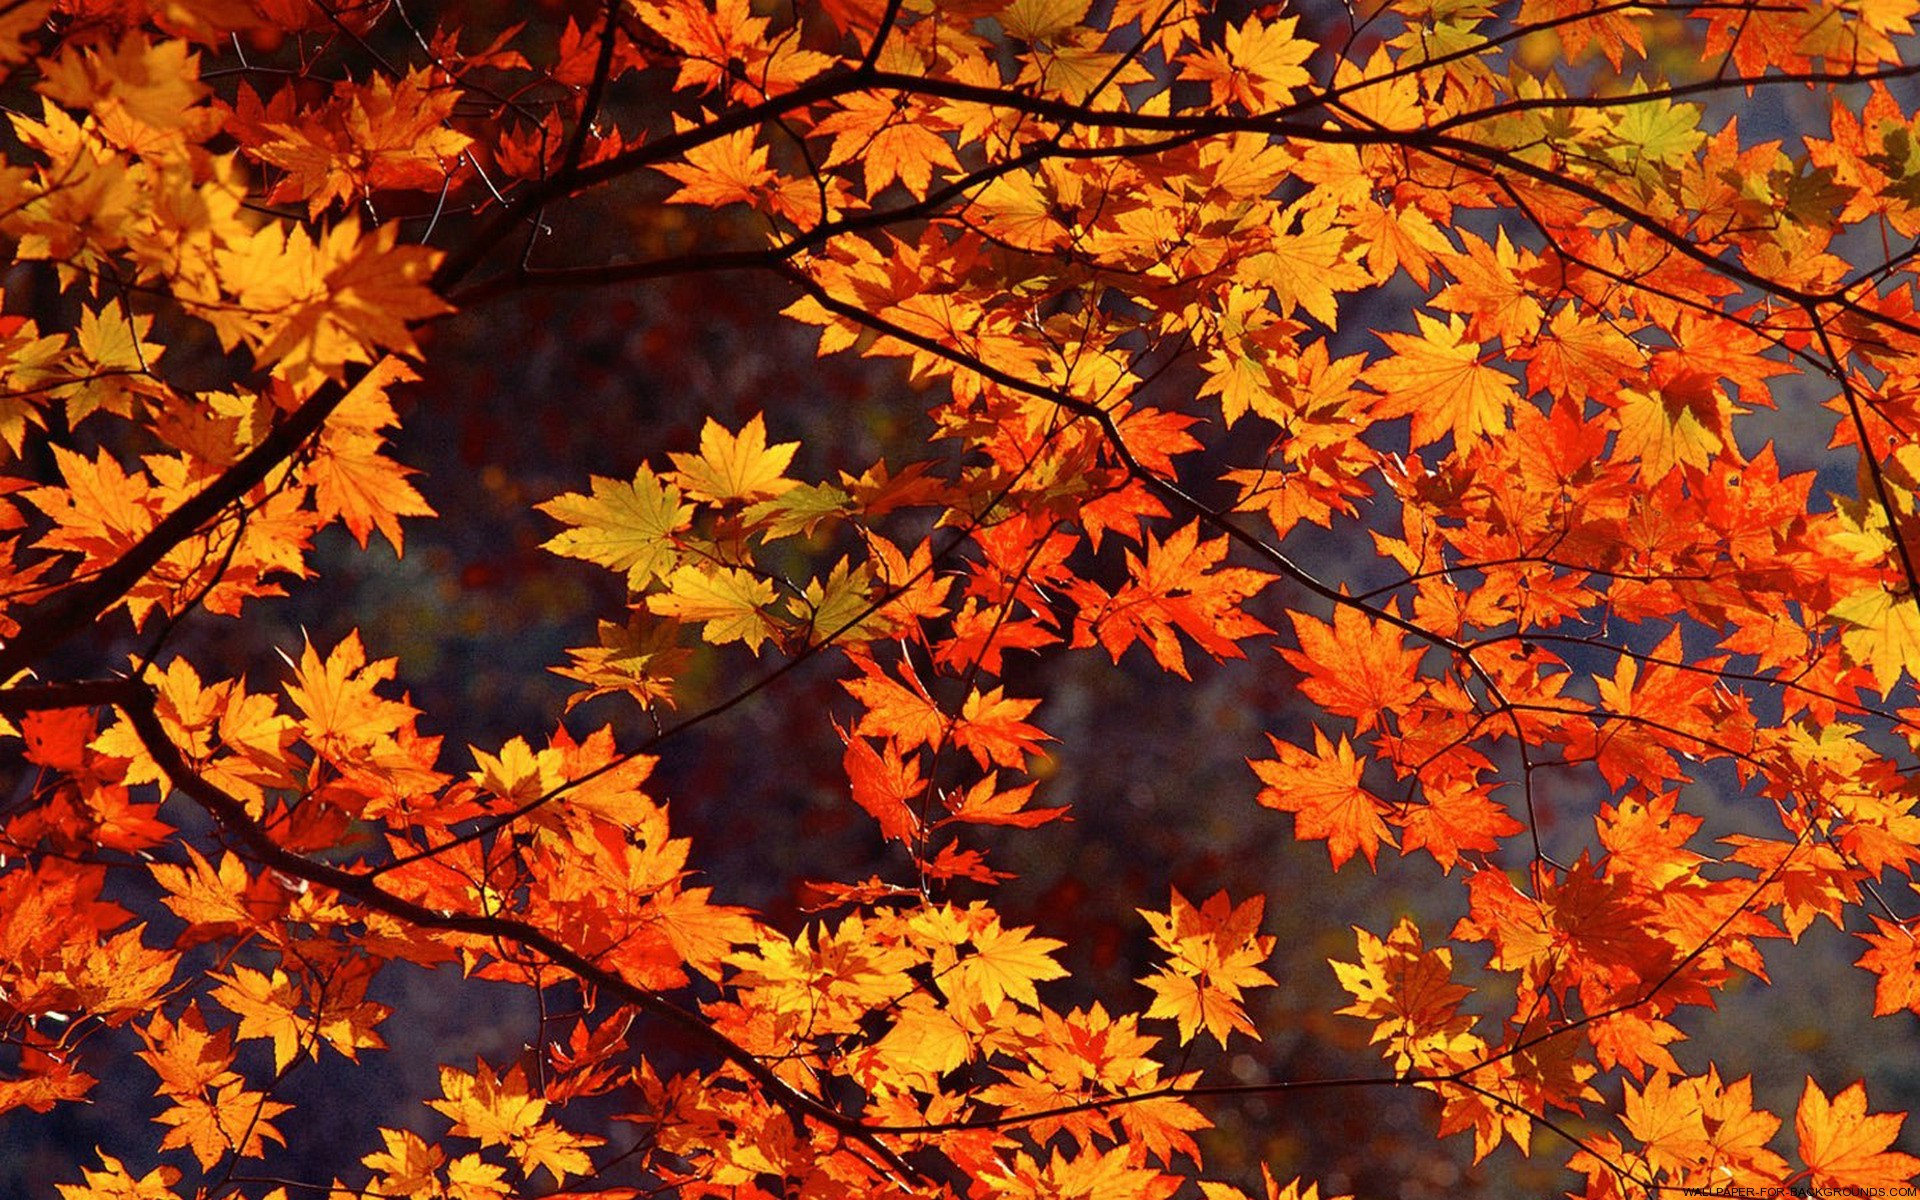 Autumn Leaves Wallpaper 1920x1200 70293